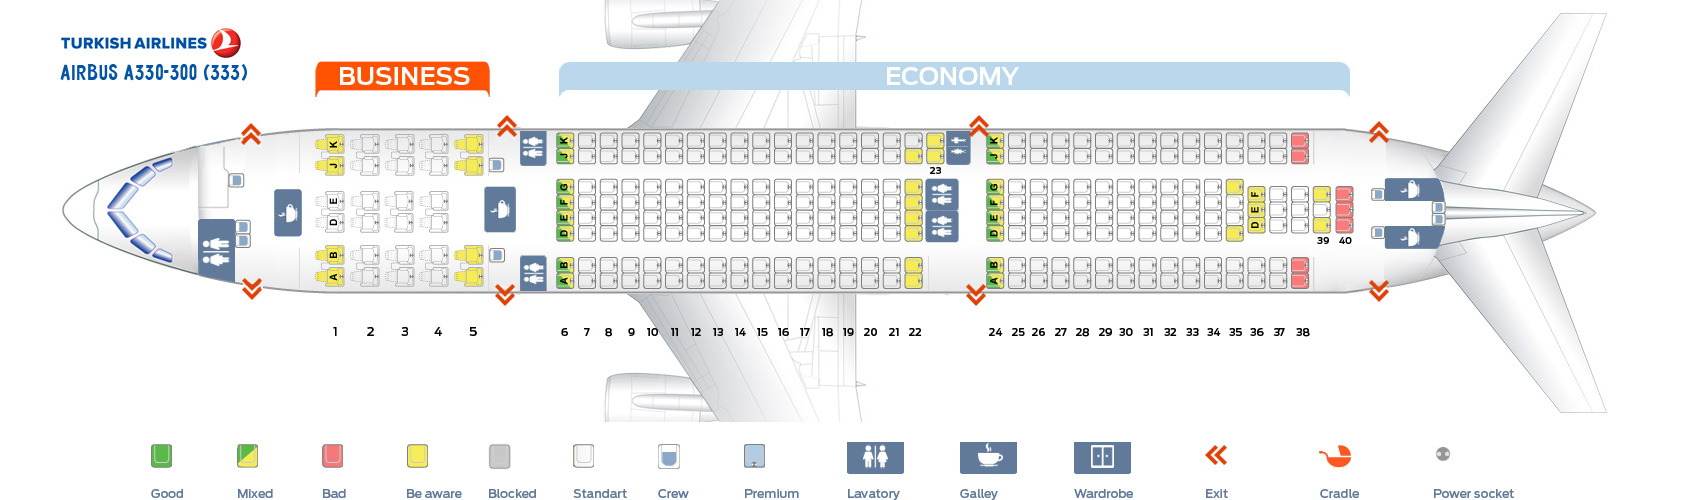 Seat Map And Seating Chart Airbus A330 300 Turkish Airlines